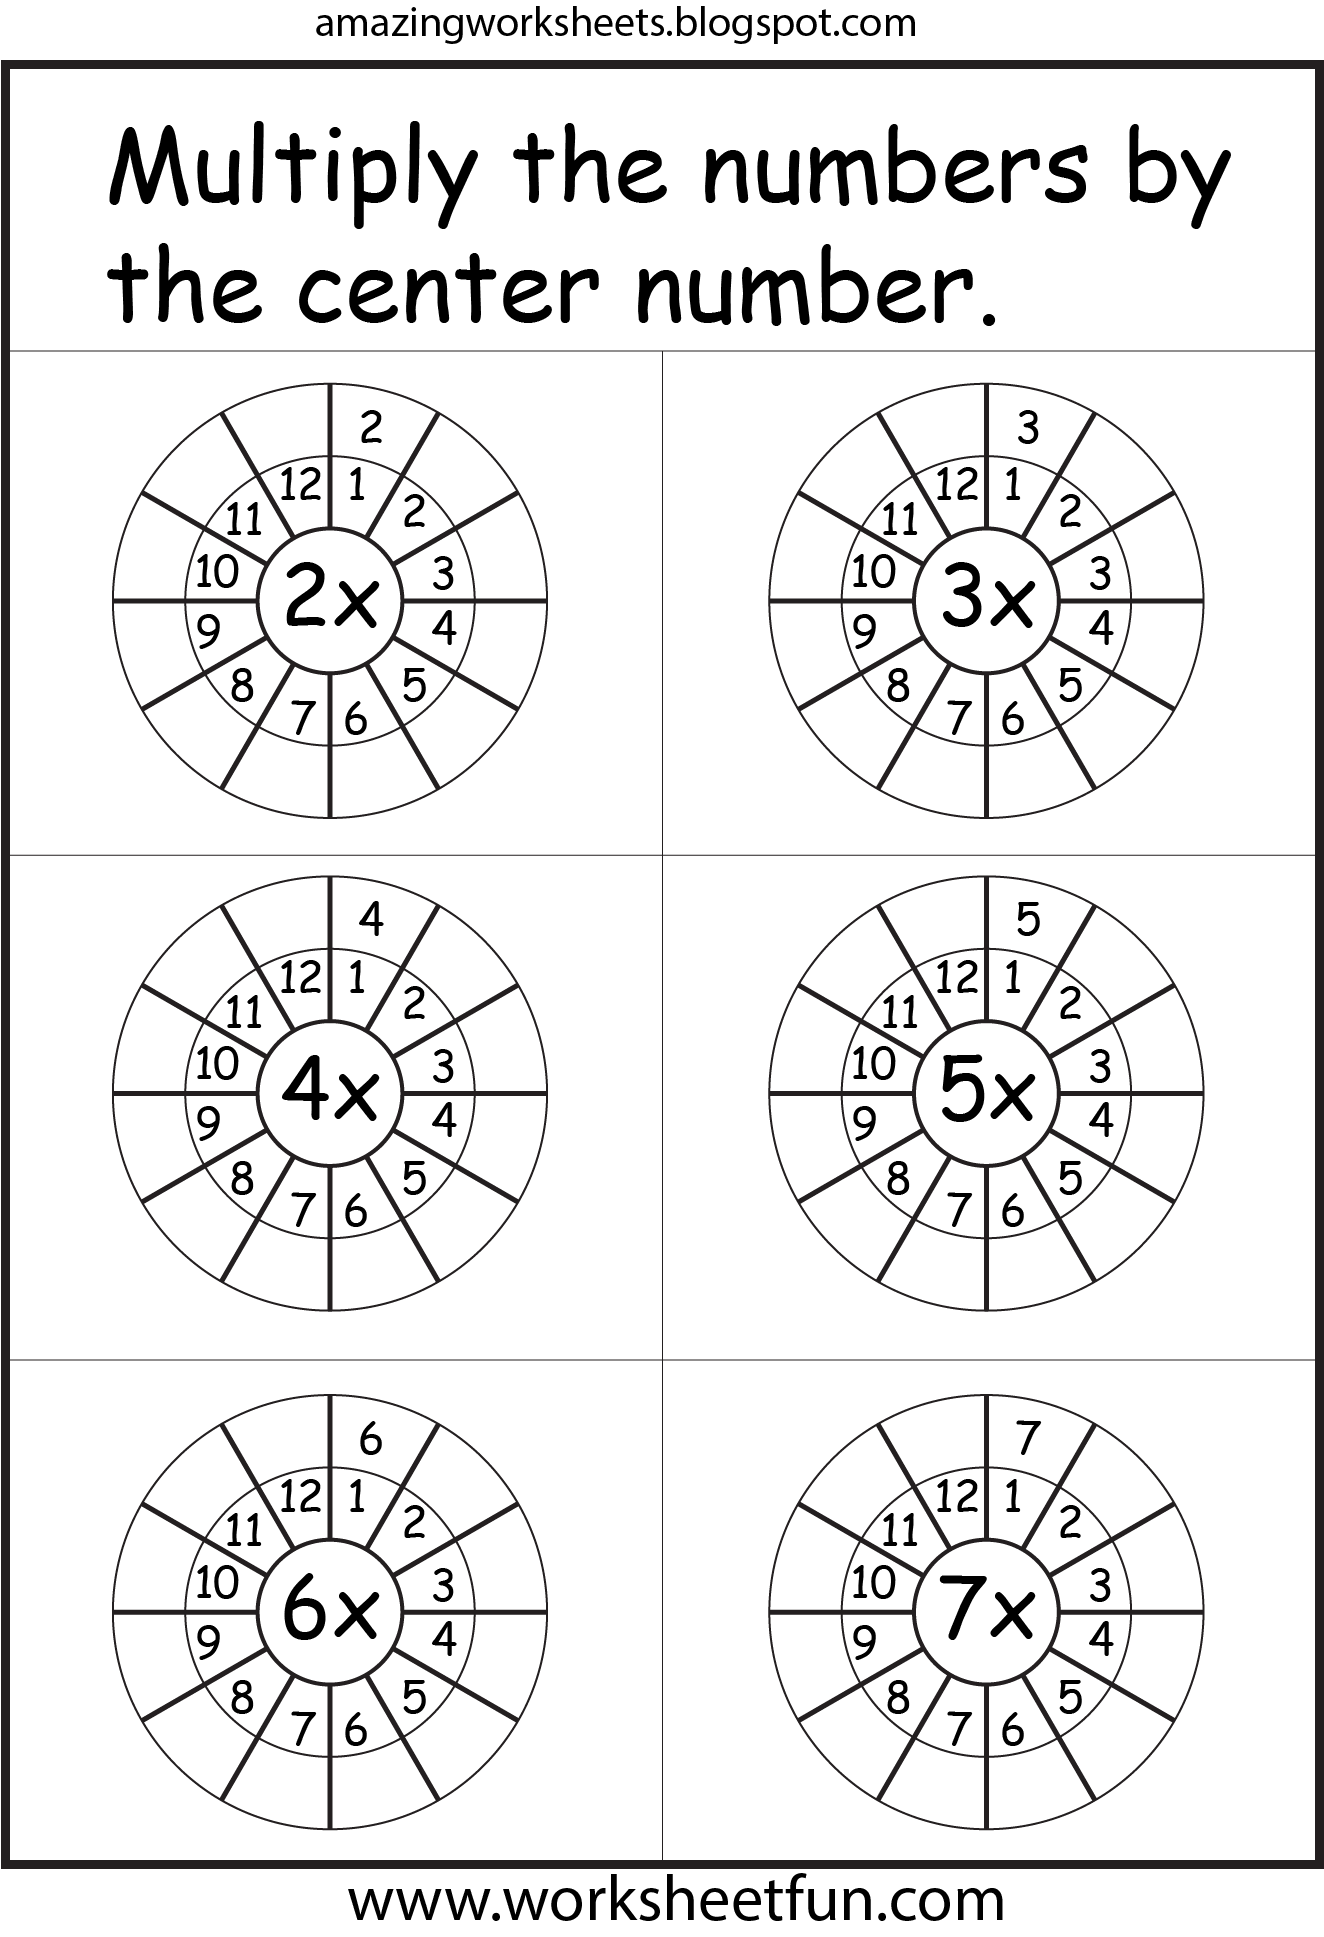 Multiplication Worksheets I Really Like This One With The Multiplication Circle For Each Number